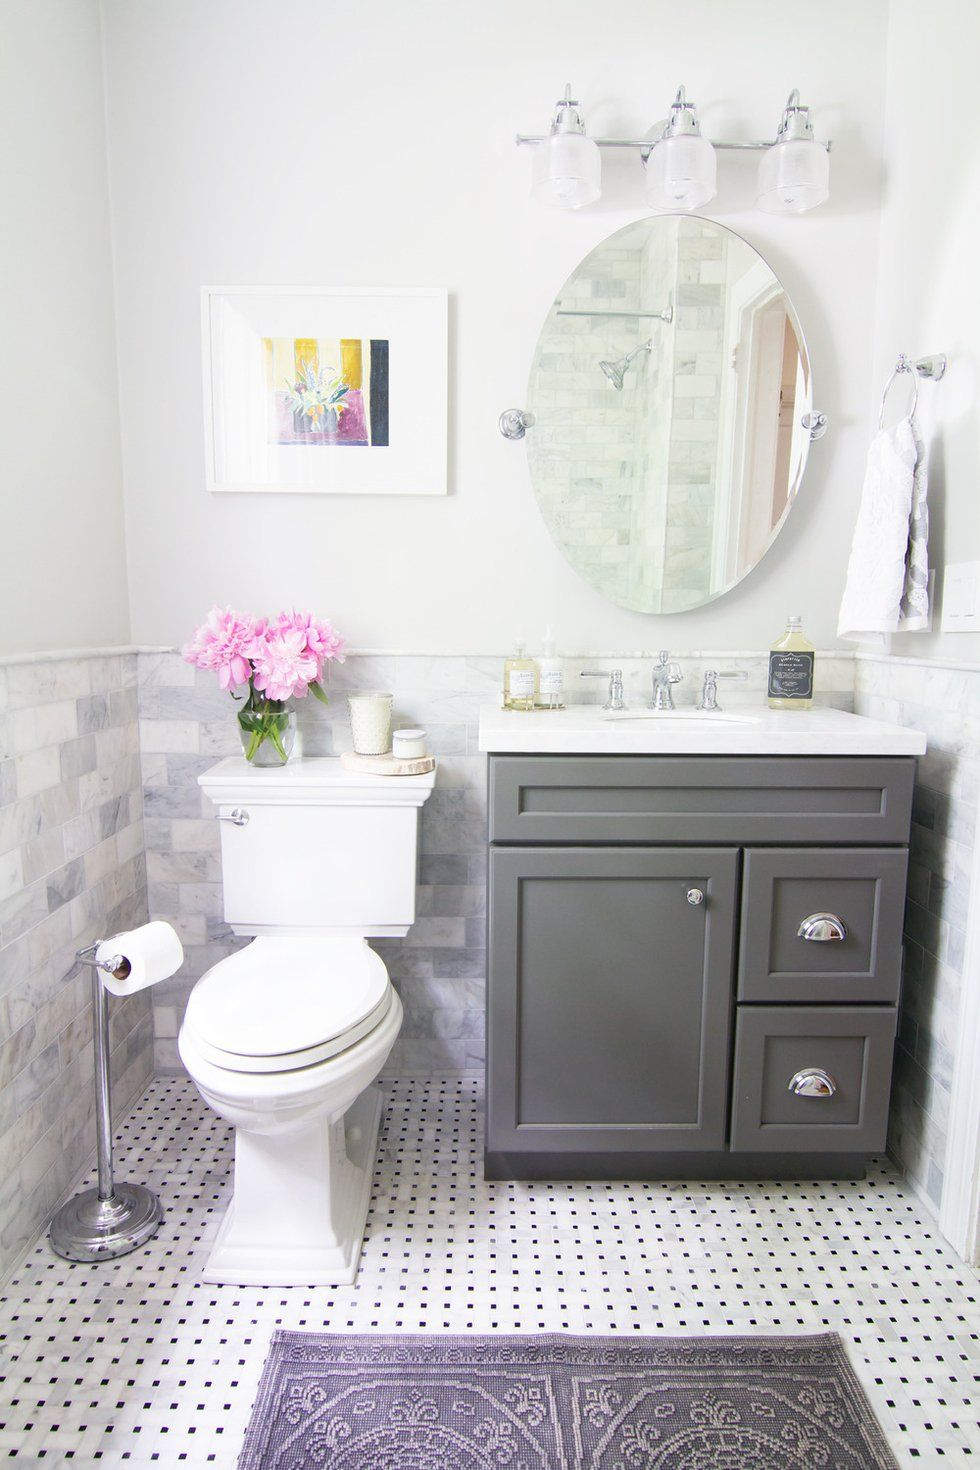 Bathroom Ideas For Small Spaces 11 awesome type of small bathroom designs - | small bathroom